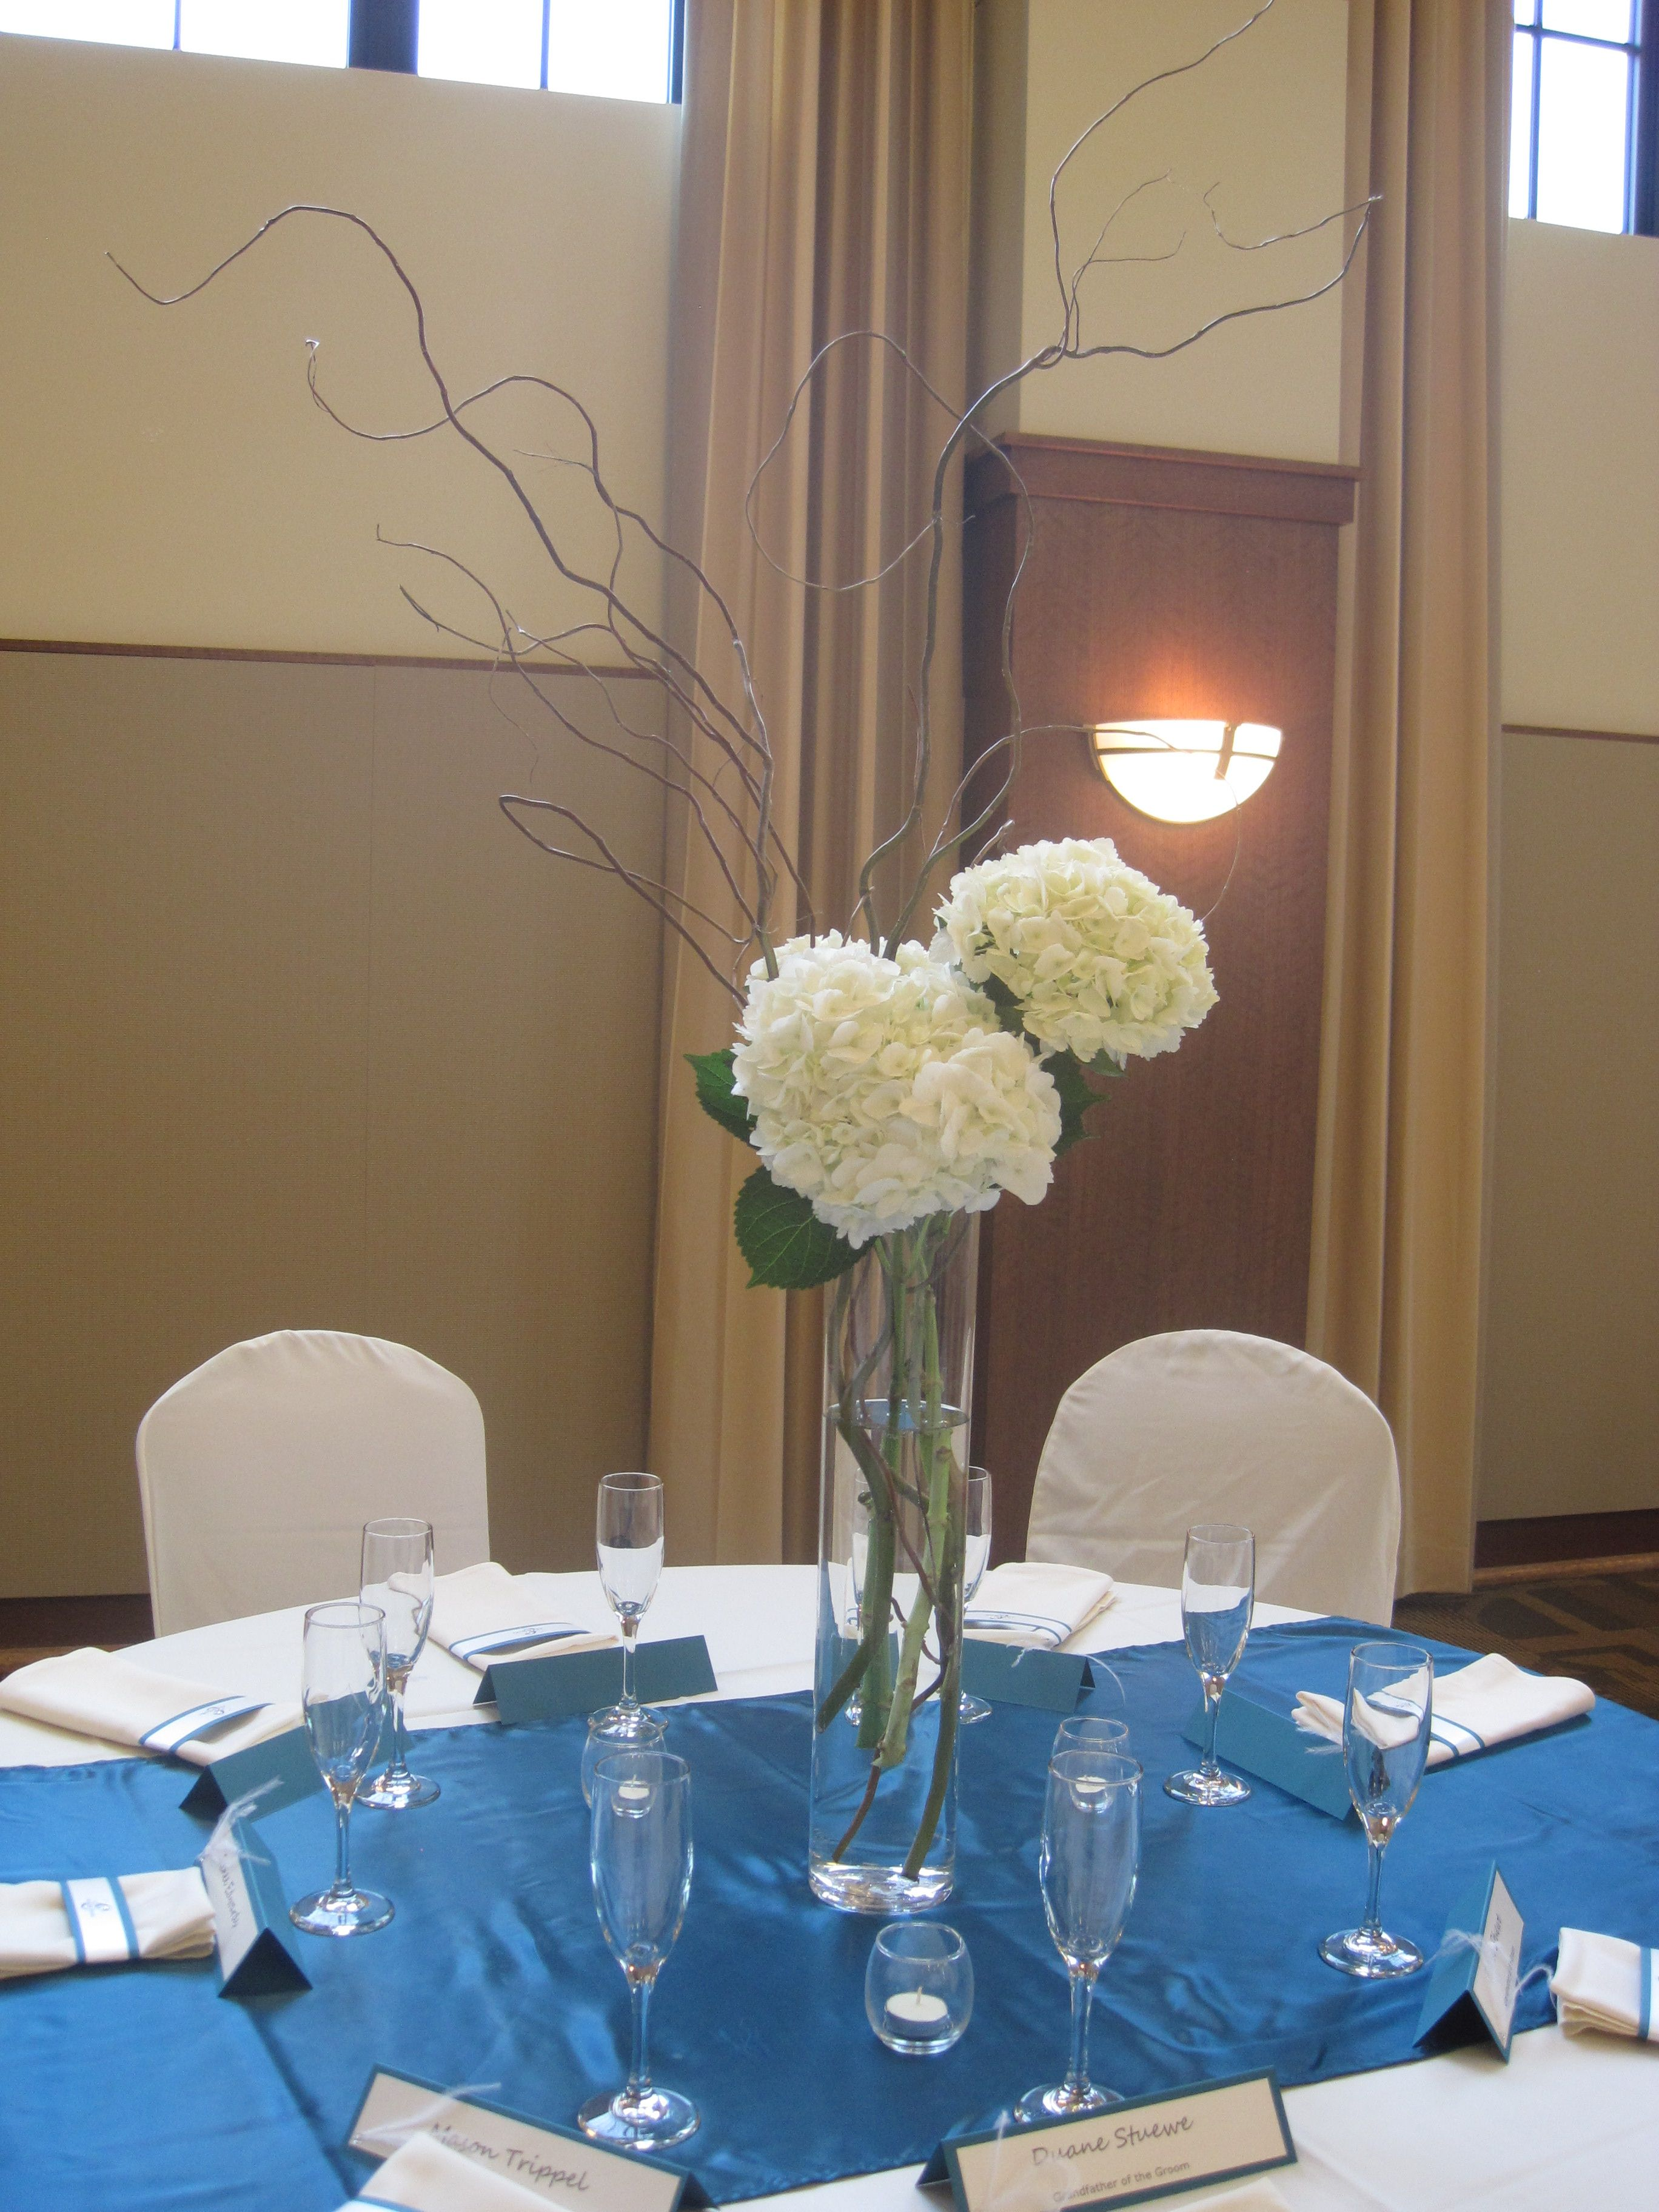 Tall wedding centerpieces teal runner hydrangea branch